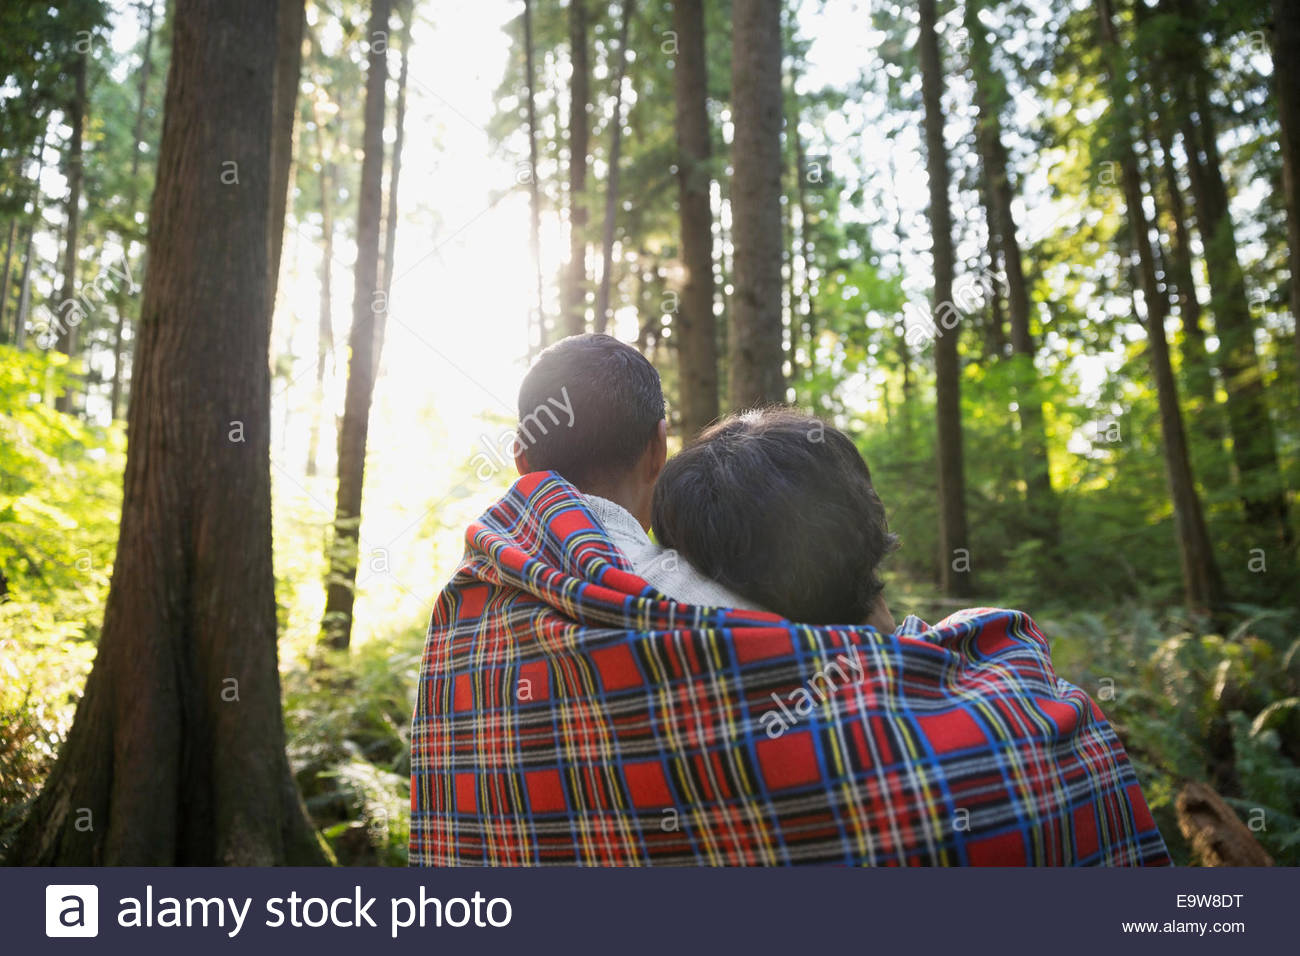 Couple wrapped in blanket in woods - Stock Image